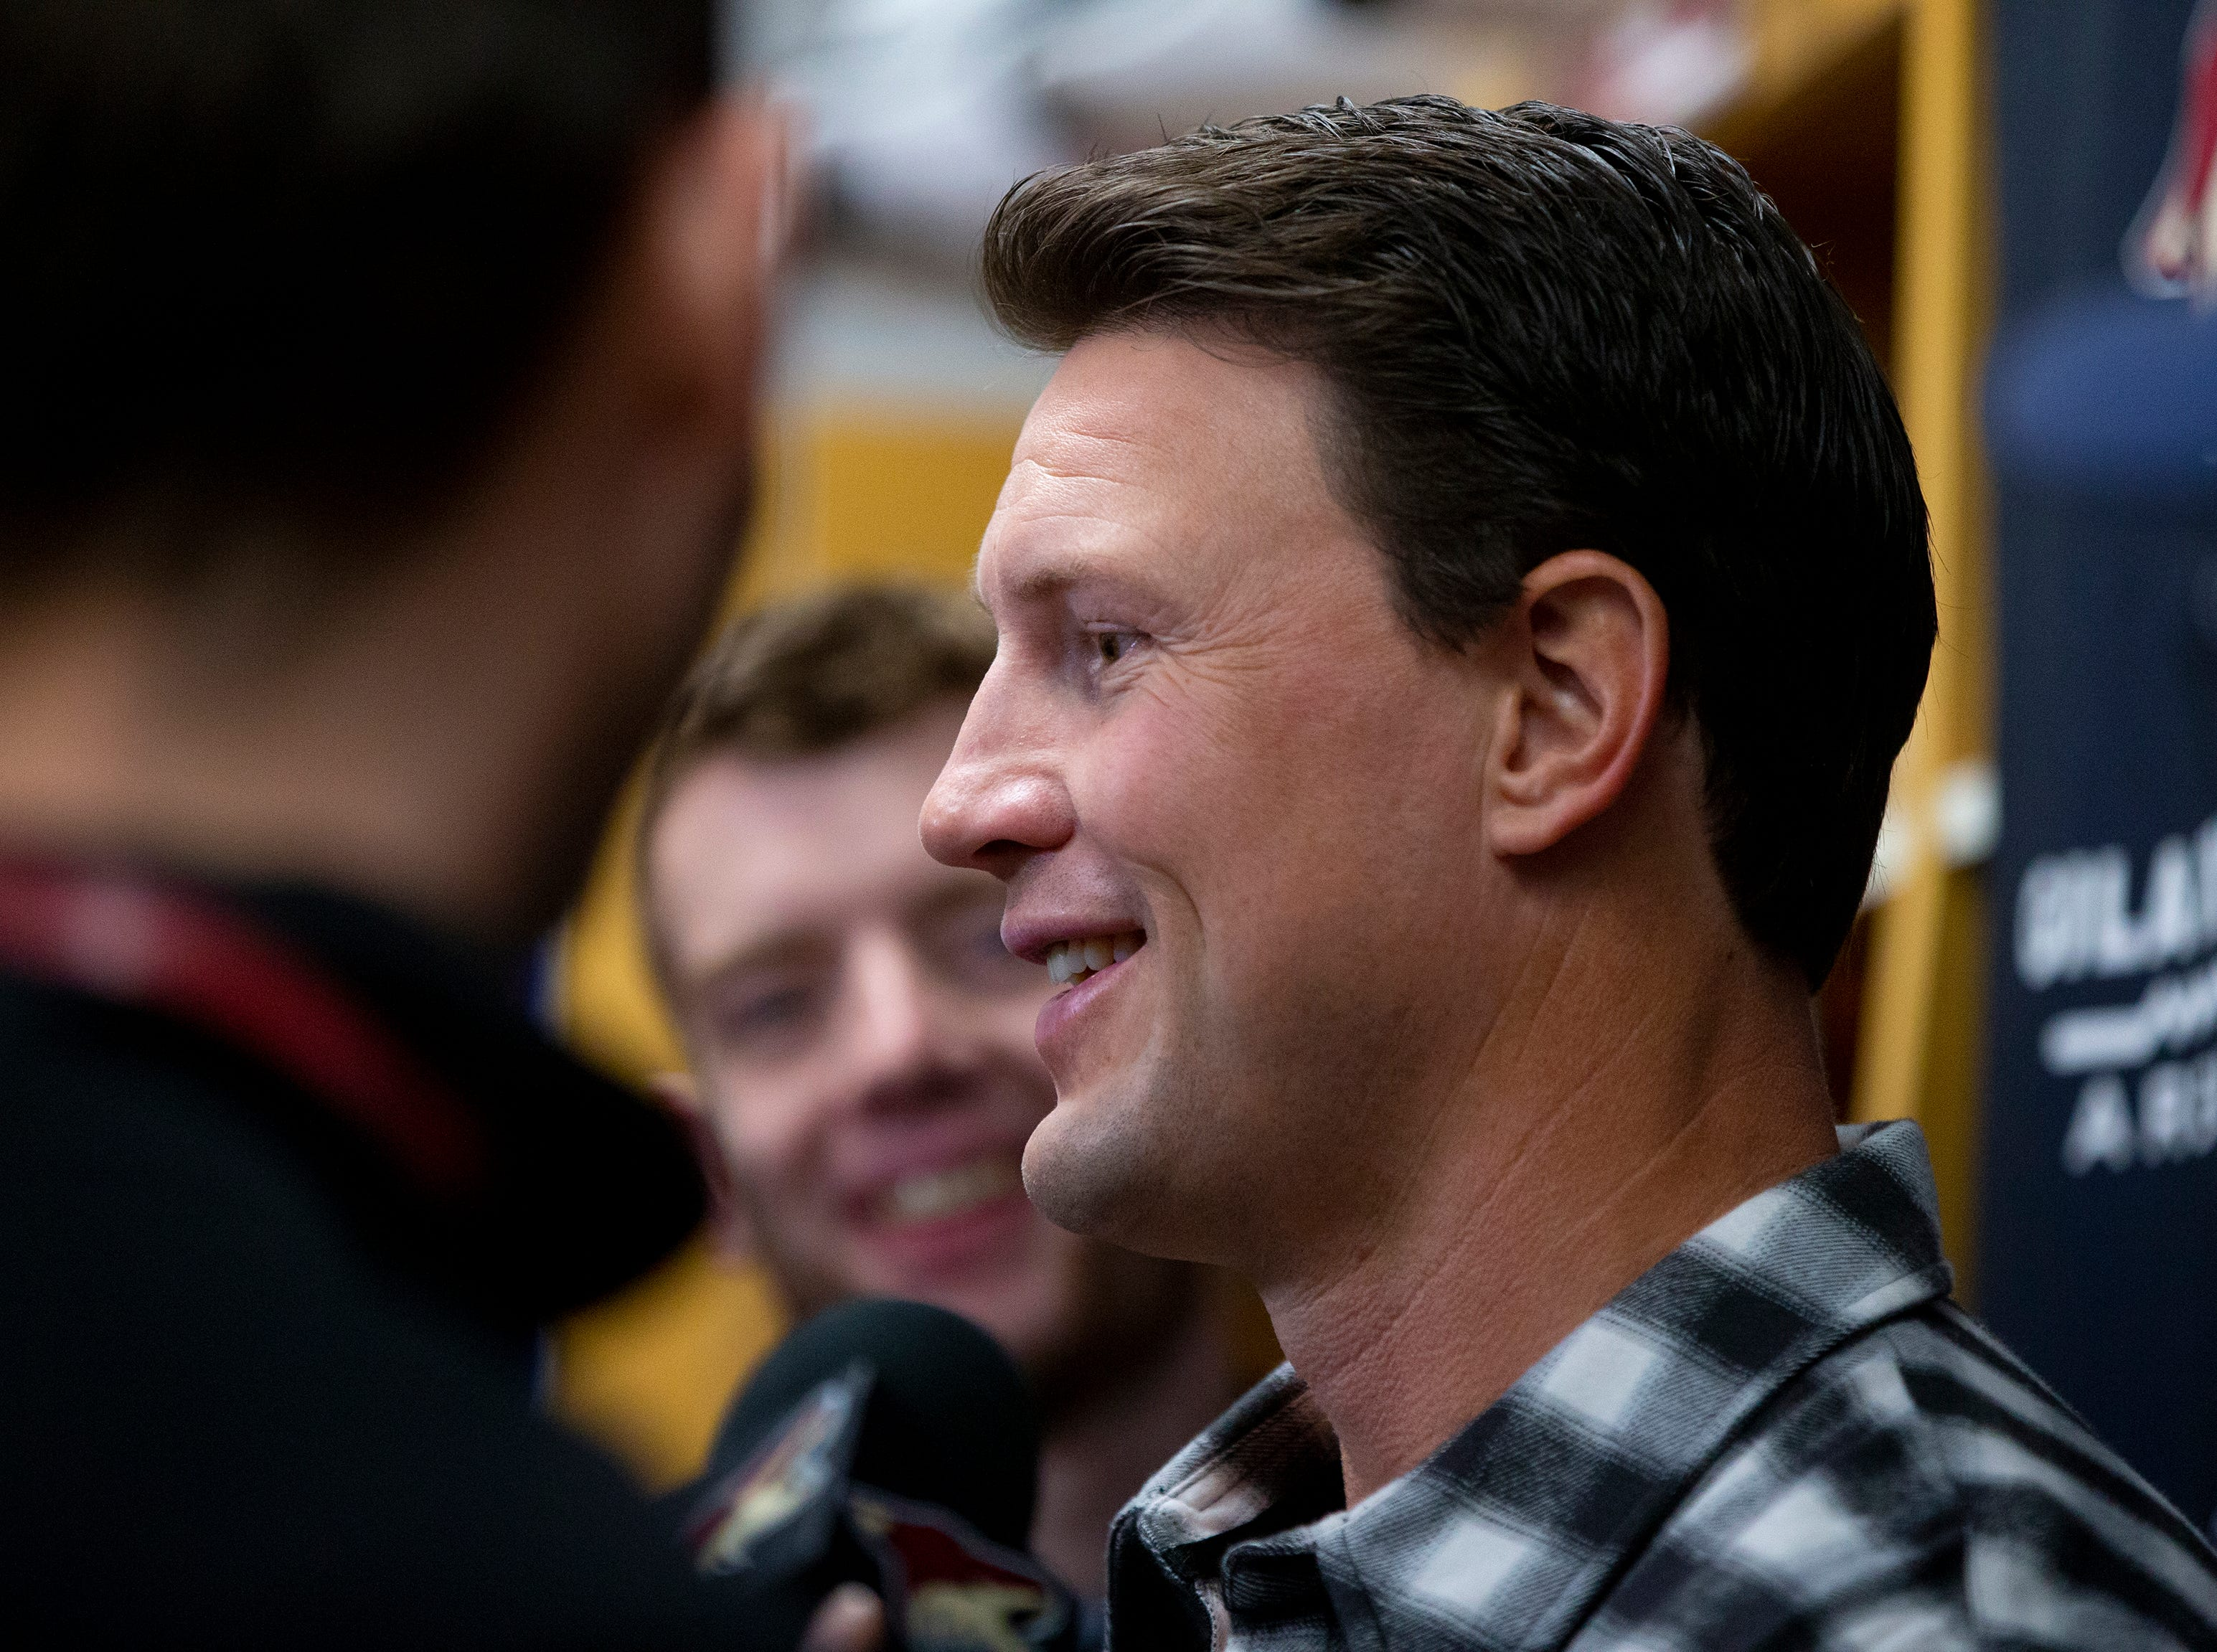 Ex-Coyotes captain Shane Doan talks to the press at IceDen Scottsdale ahead of his jersey retirement Sunday, February 24.